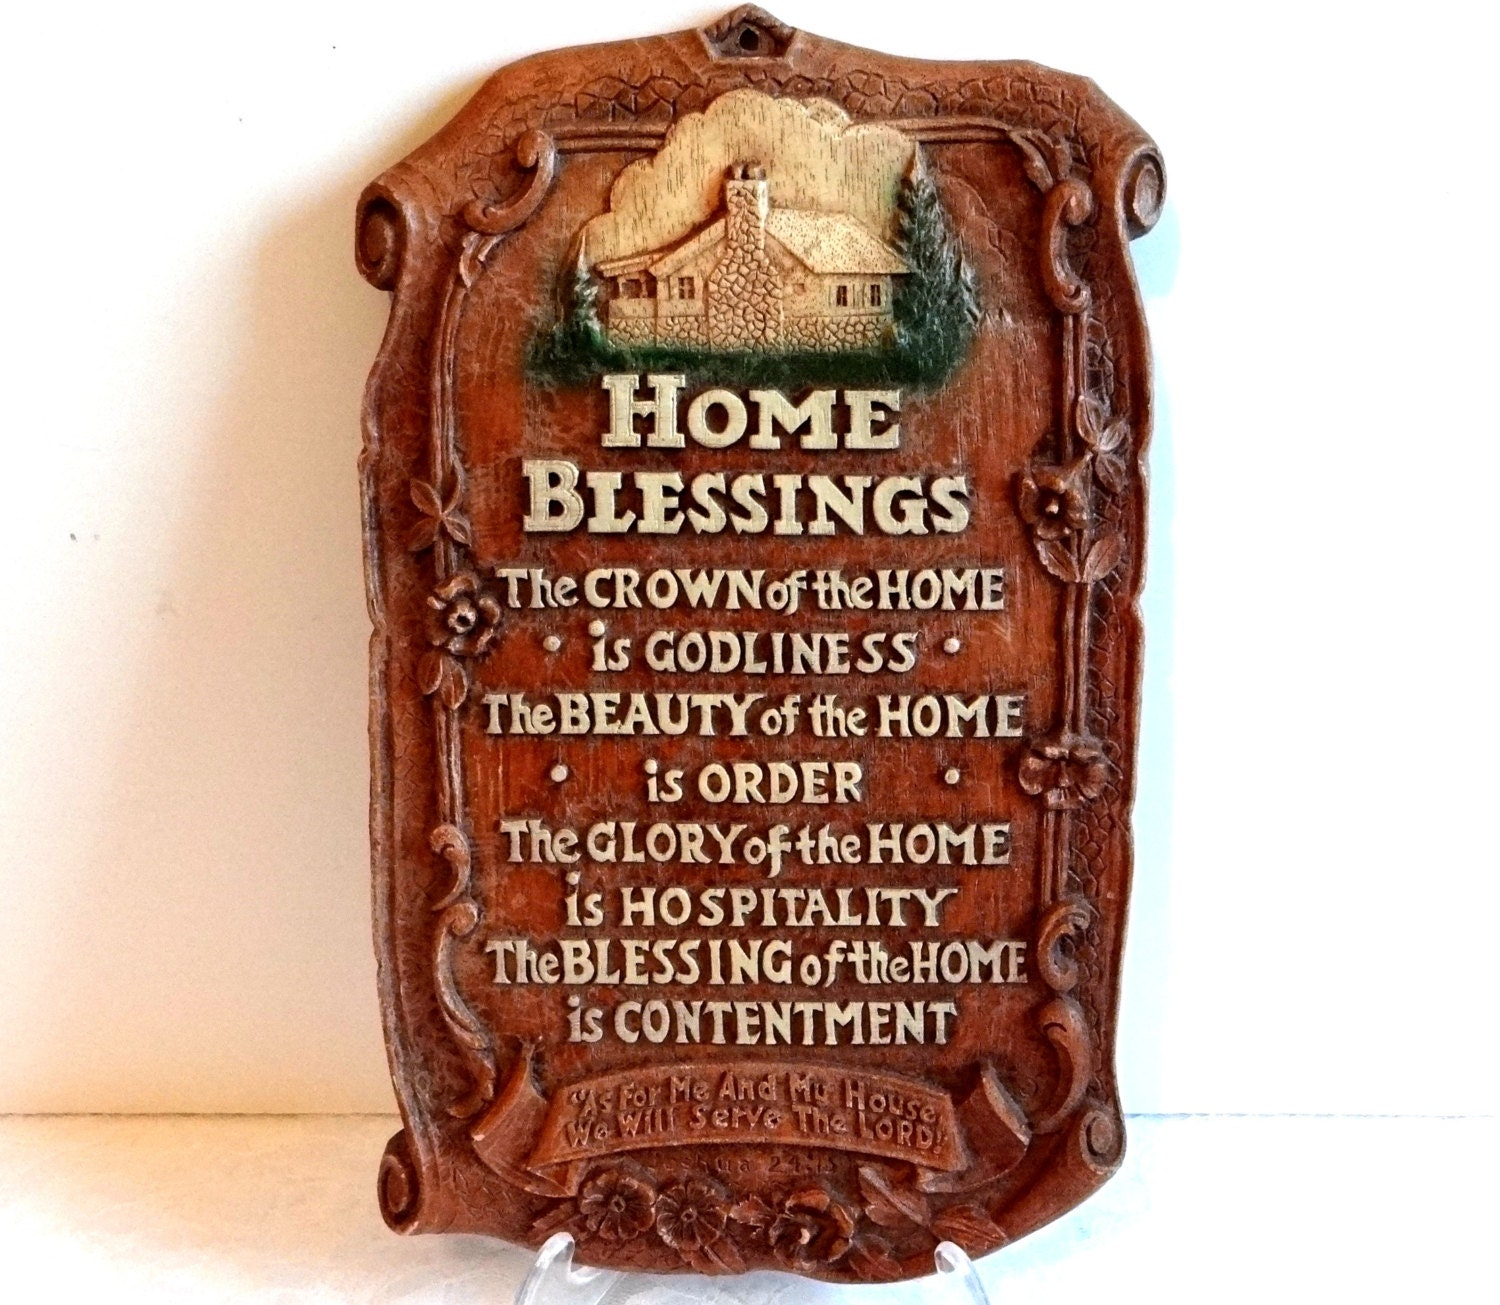 Blessings Home Decor: Vintage Home Blessings Wall Plaque Collectible Home Decor